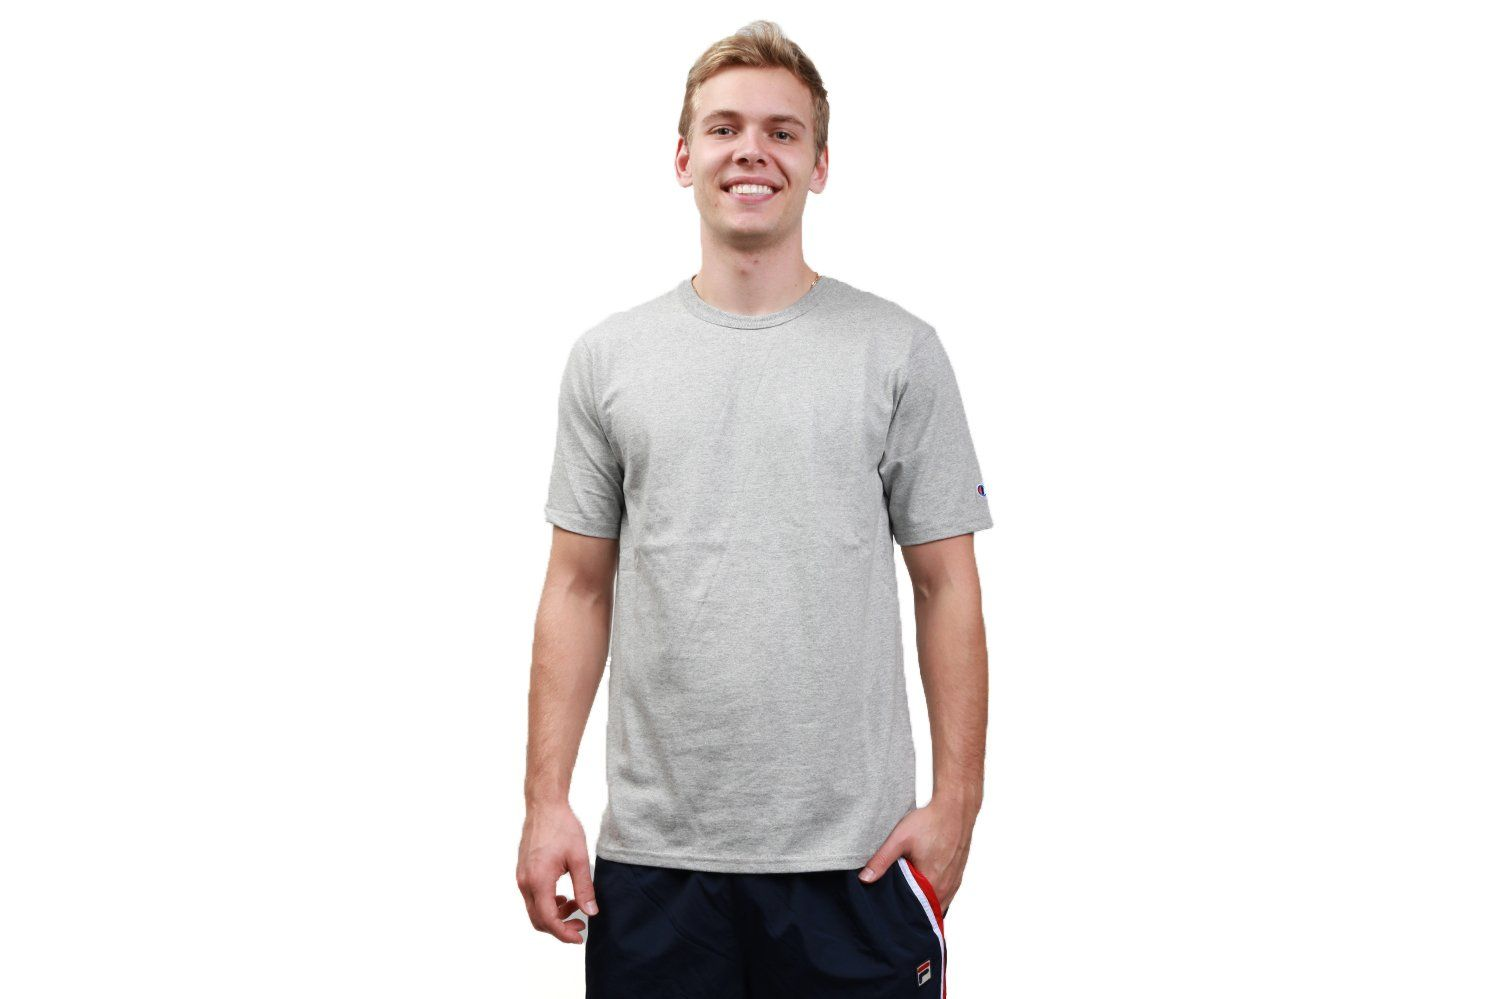 REVERSE WEAVE TEE 'C' SLEEVE - GT19 MENS SOFTGOODS CHAMPION OXFORD GRAY S